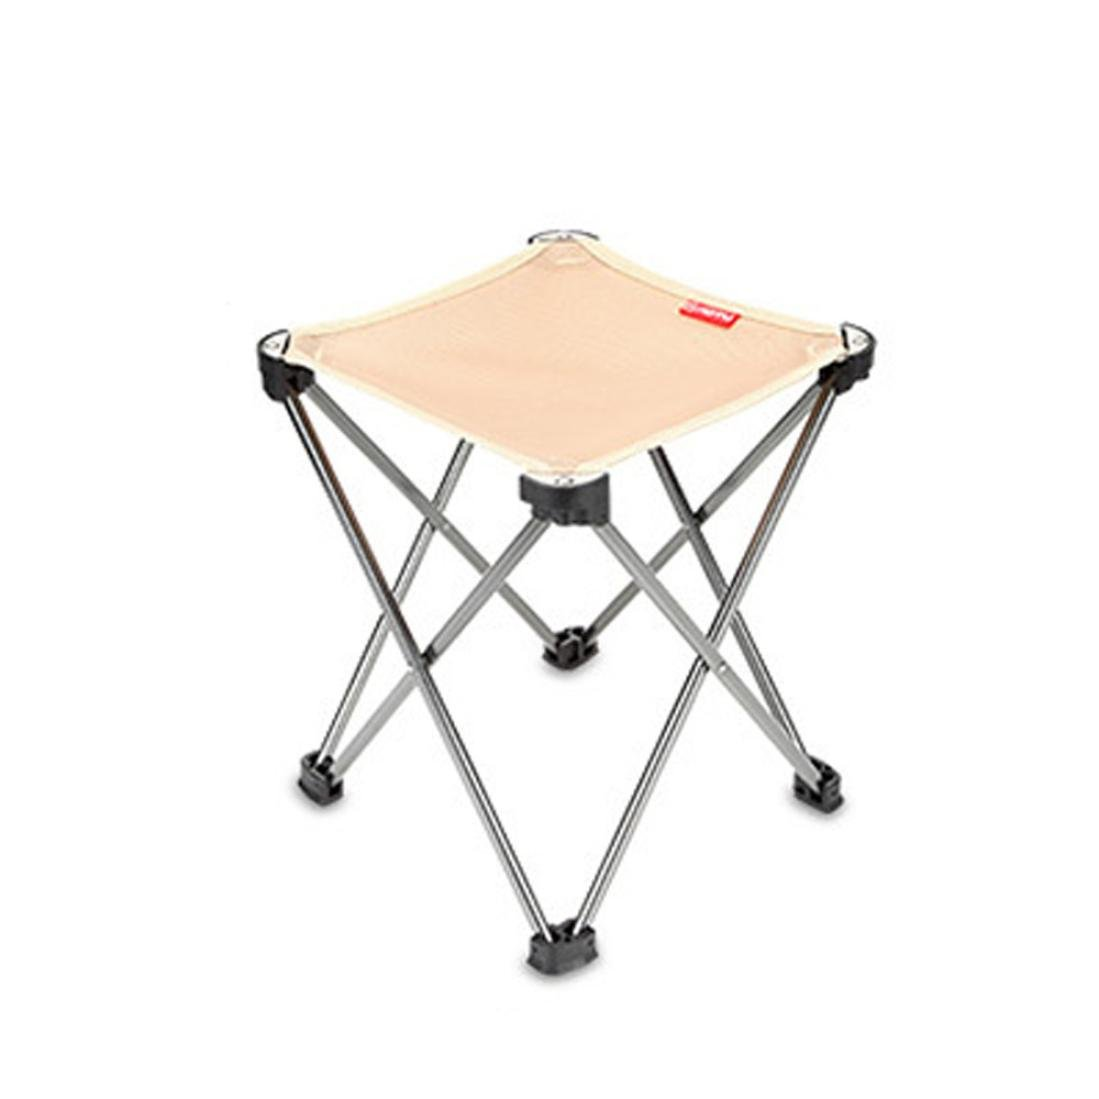 Dingji Aotu Outdoor Folding Fold Aluminum Chair Stool Fishing Camping Seat (Khaki)